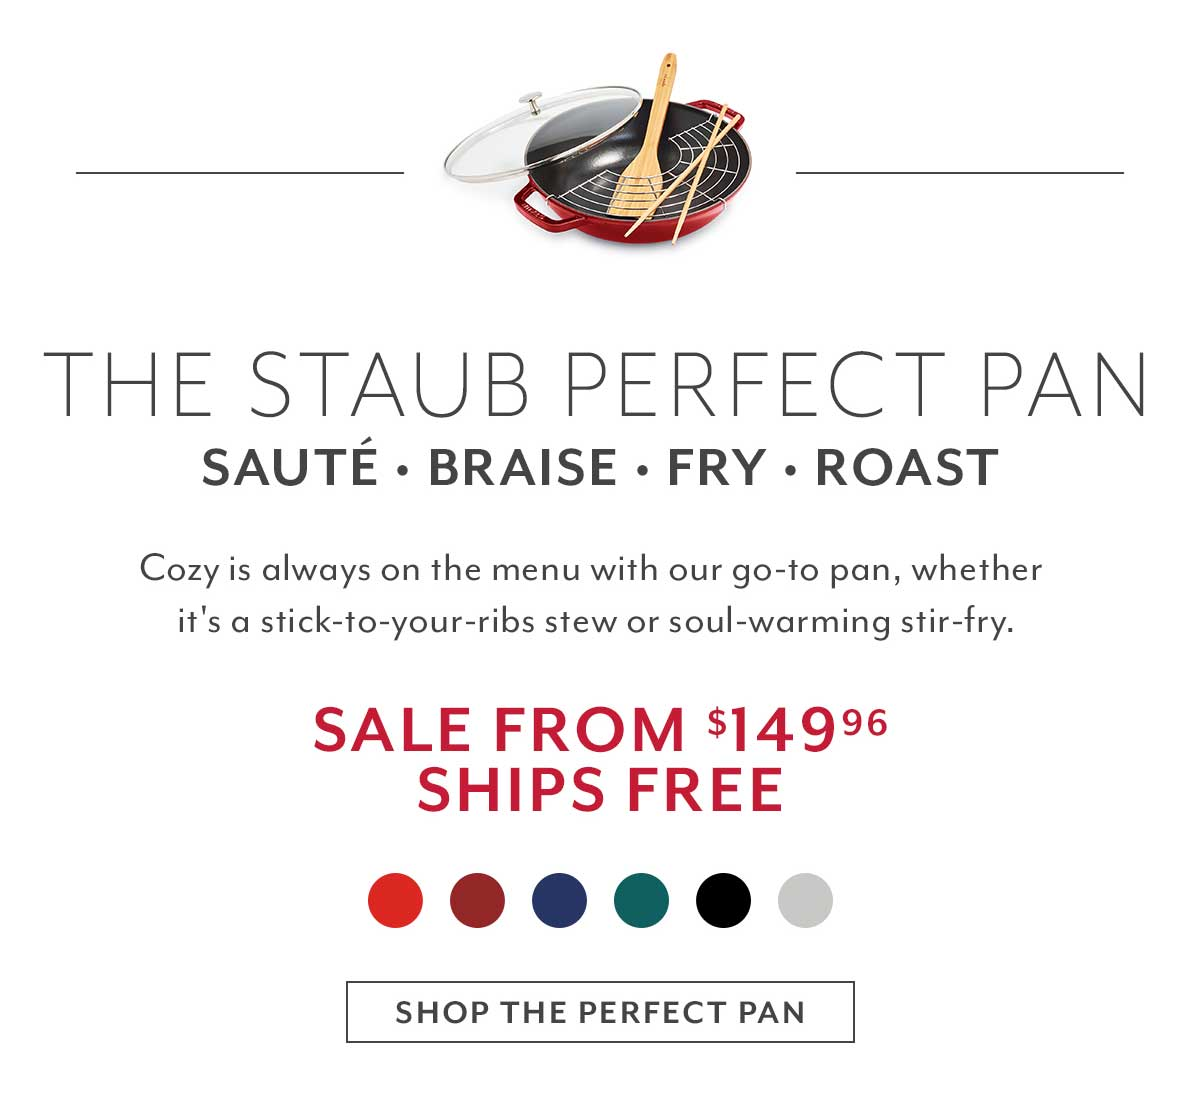 The Staub Perfect Pan